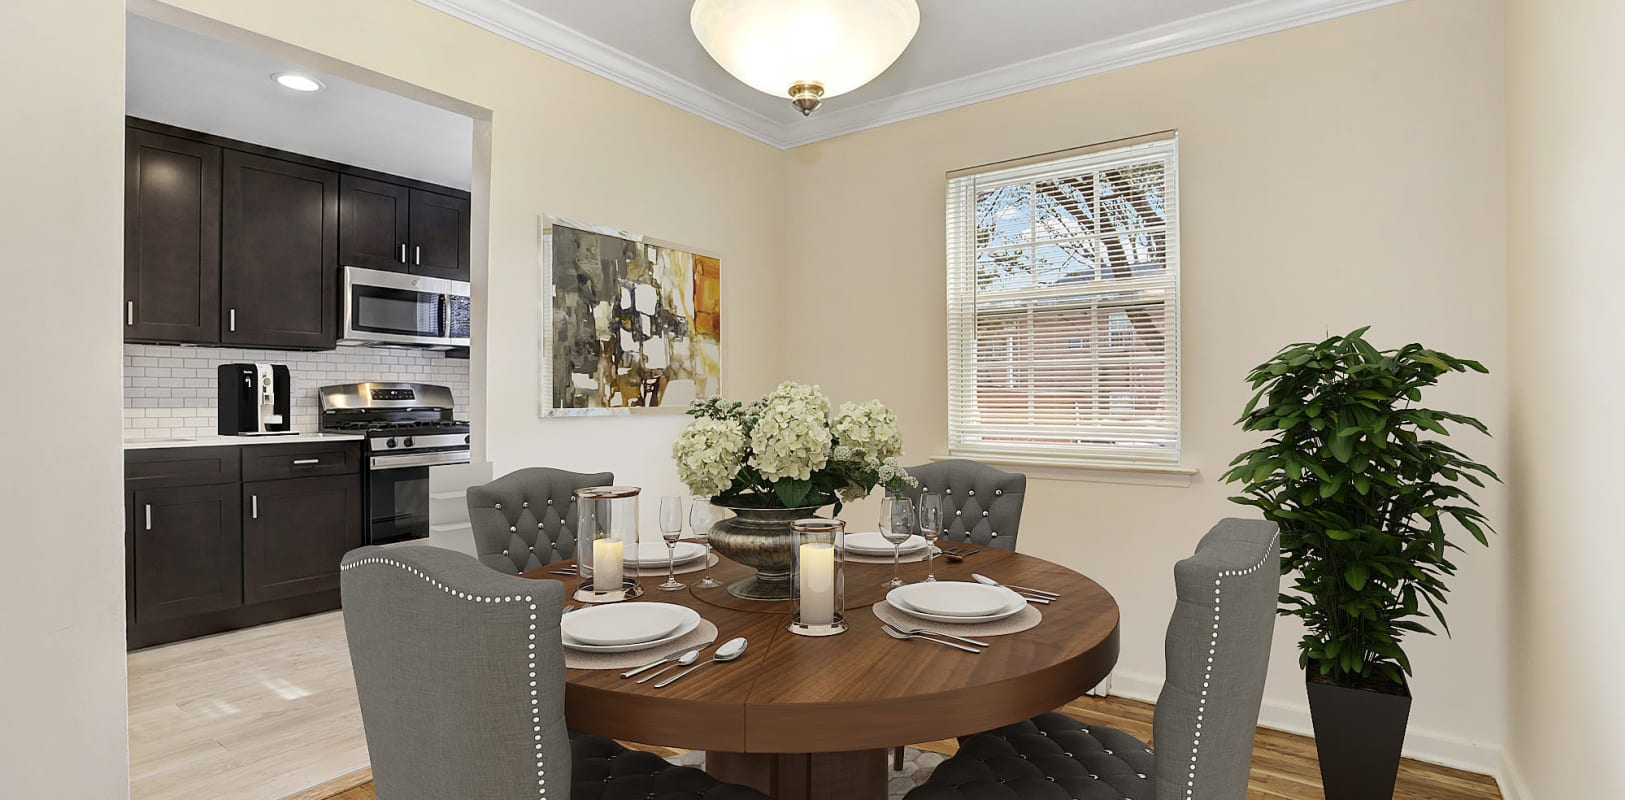 Dining room with easy kitchen access at Park Lane Apartments in Little Falls, New Jersey